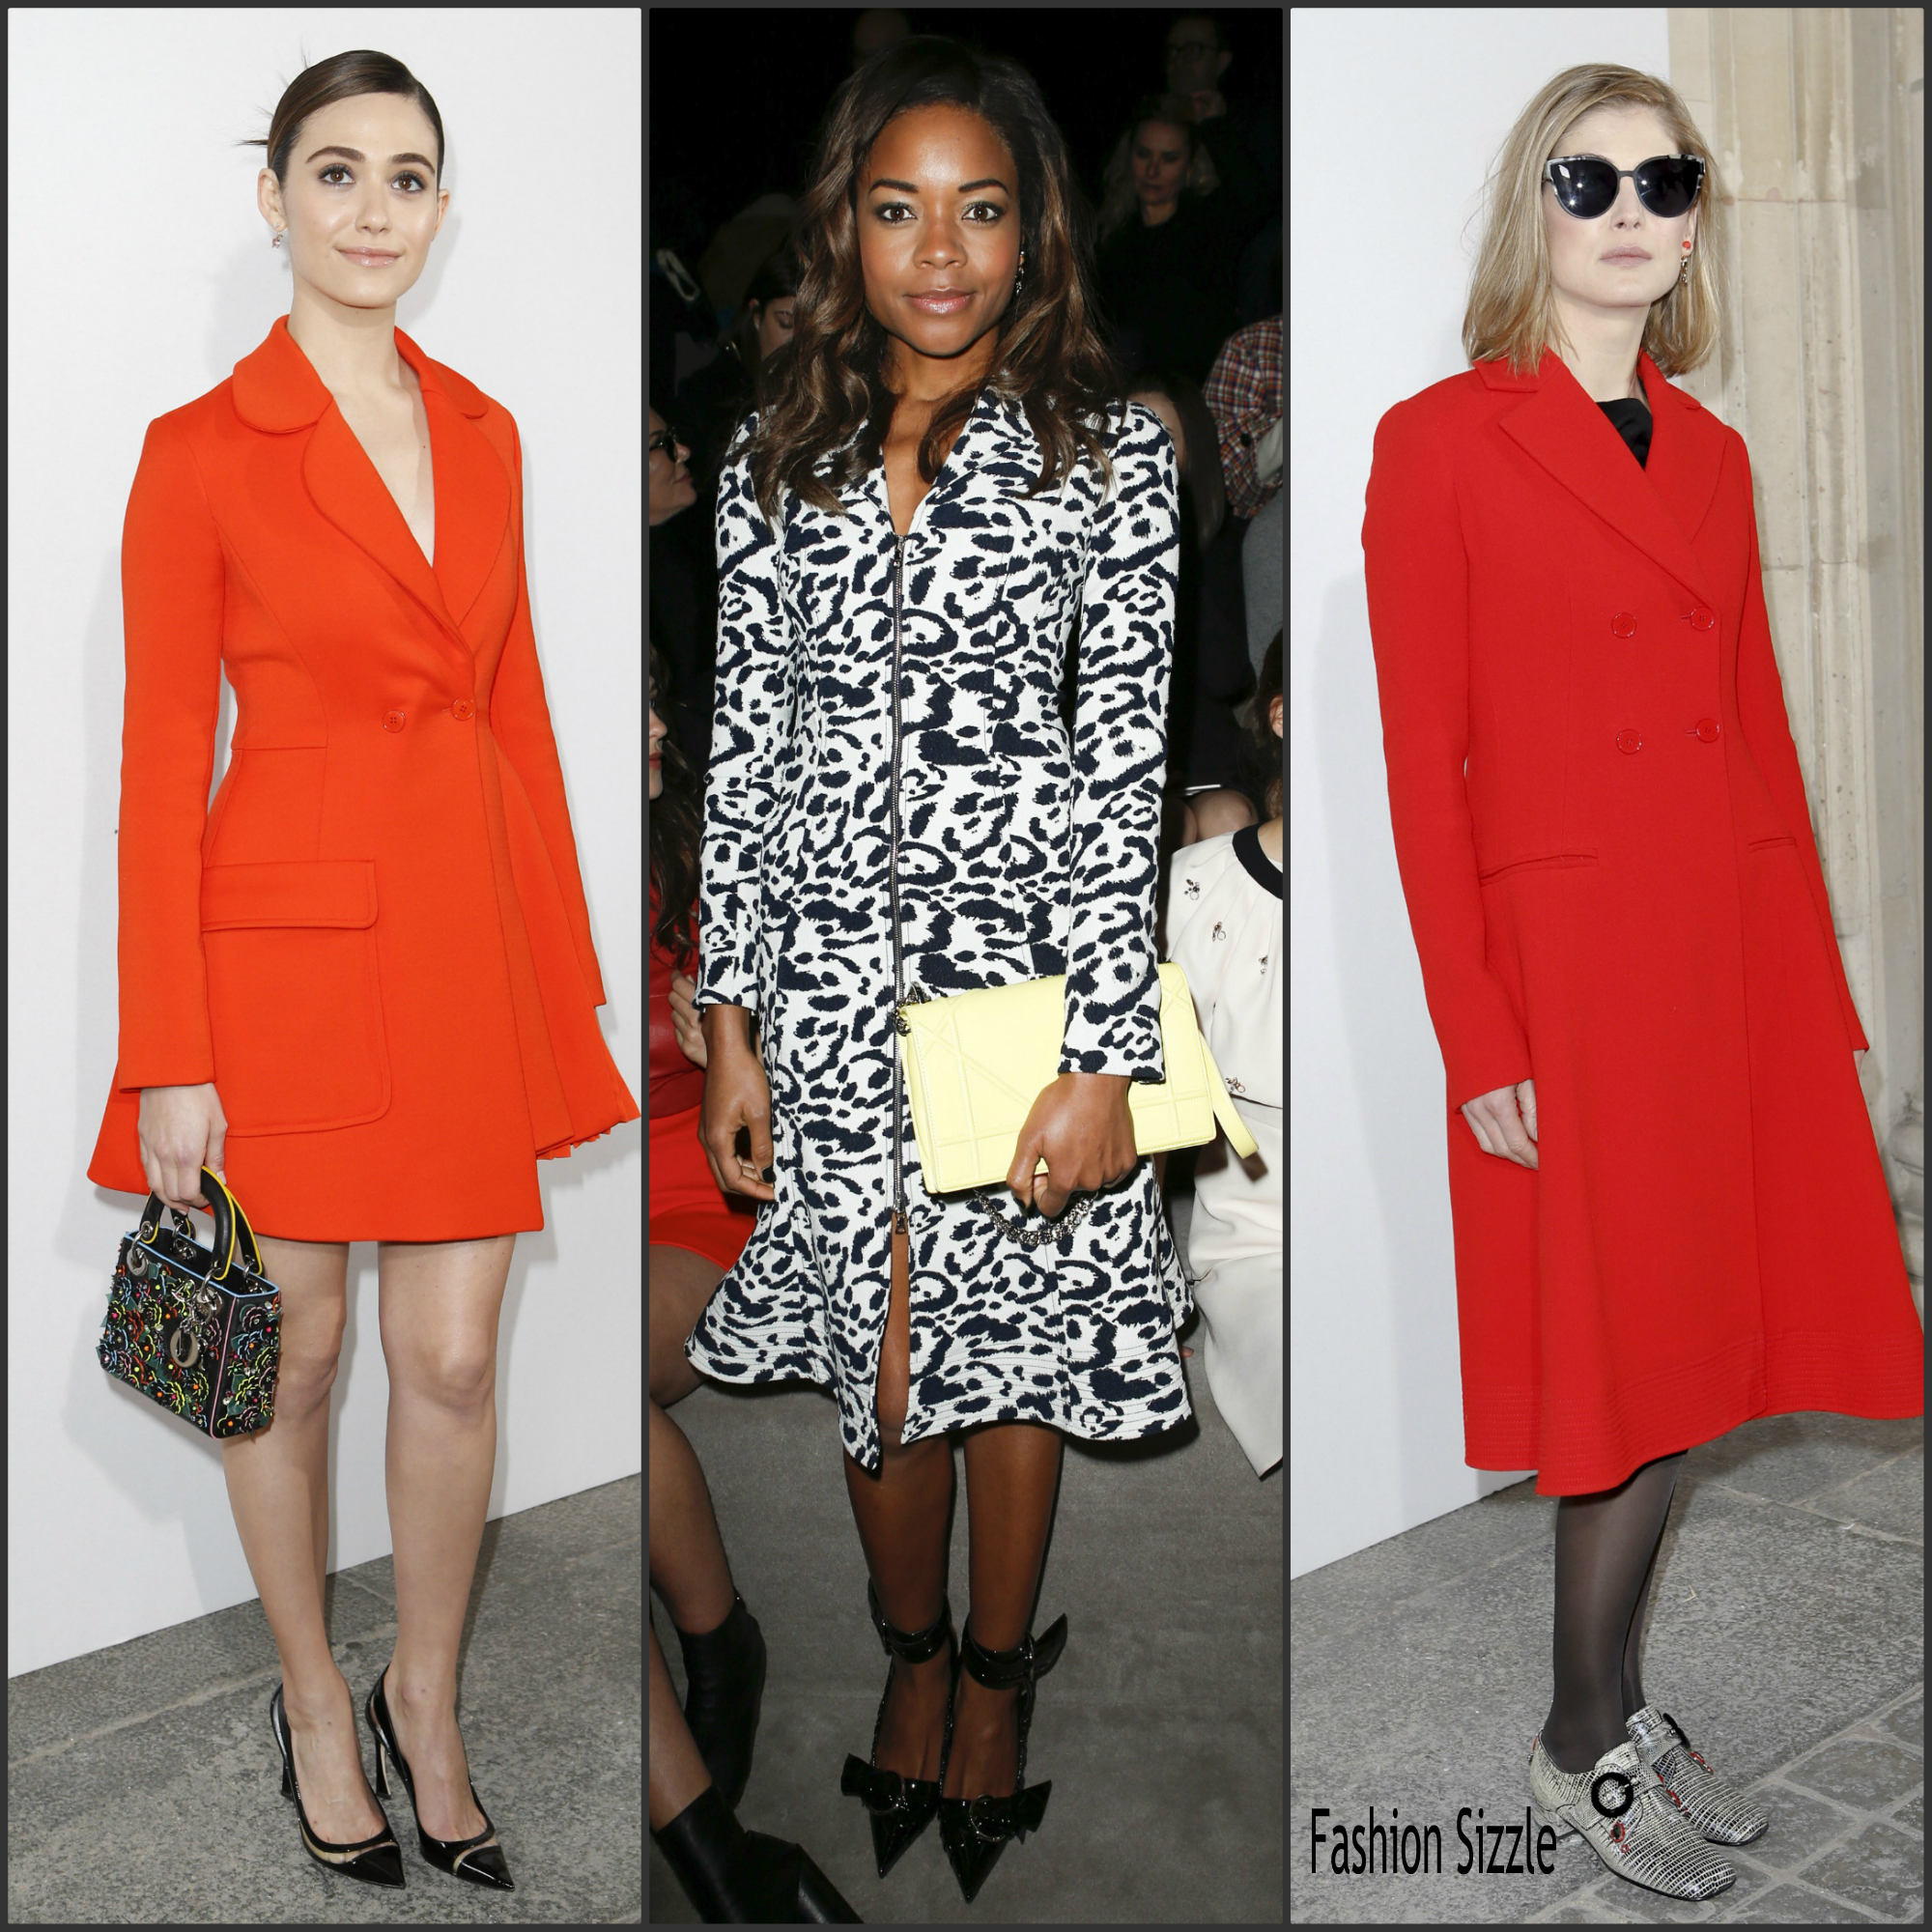 emmy-rossum-naomie-harris-rosamund-pike-in-christian-dior-dior-fall-winter-2016-paris-fashion-week-show (1)